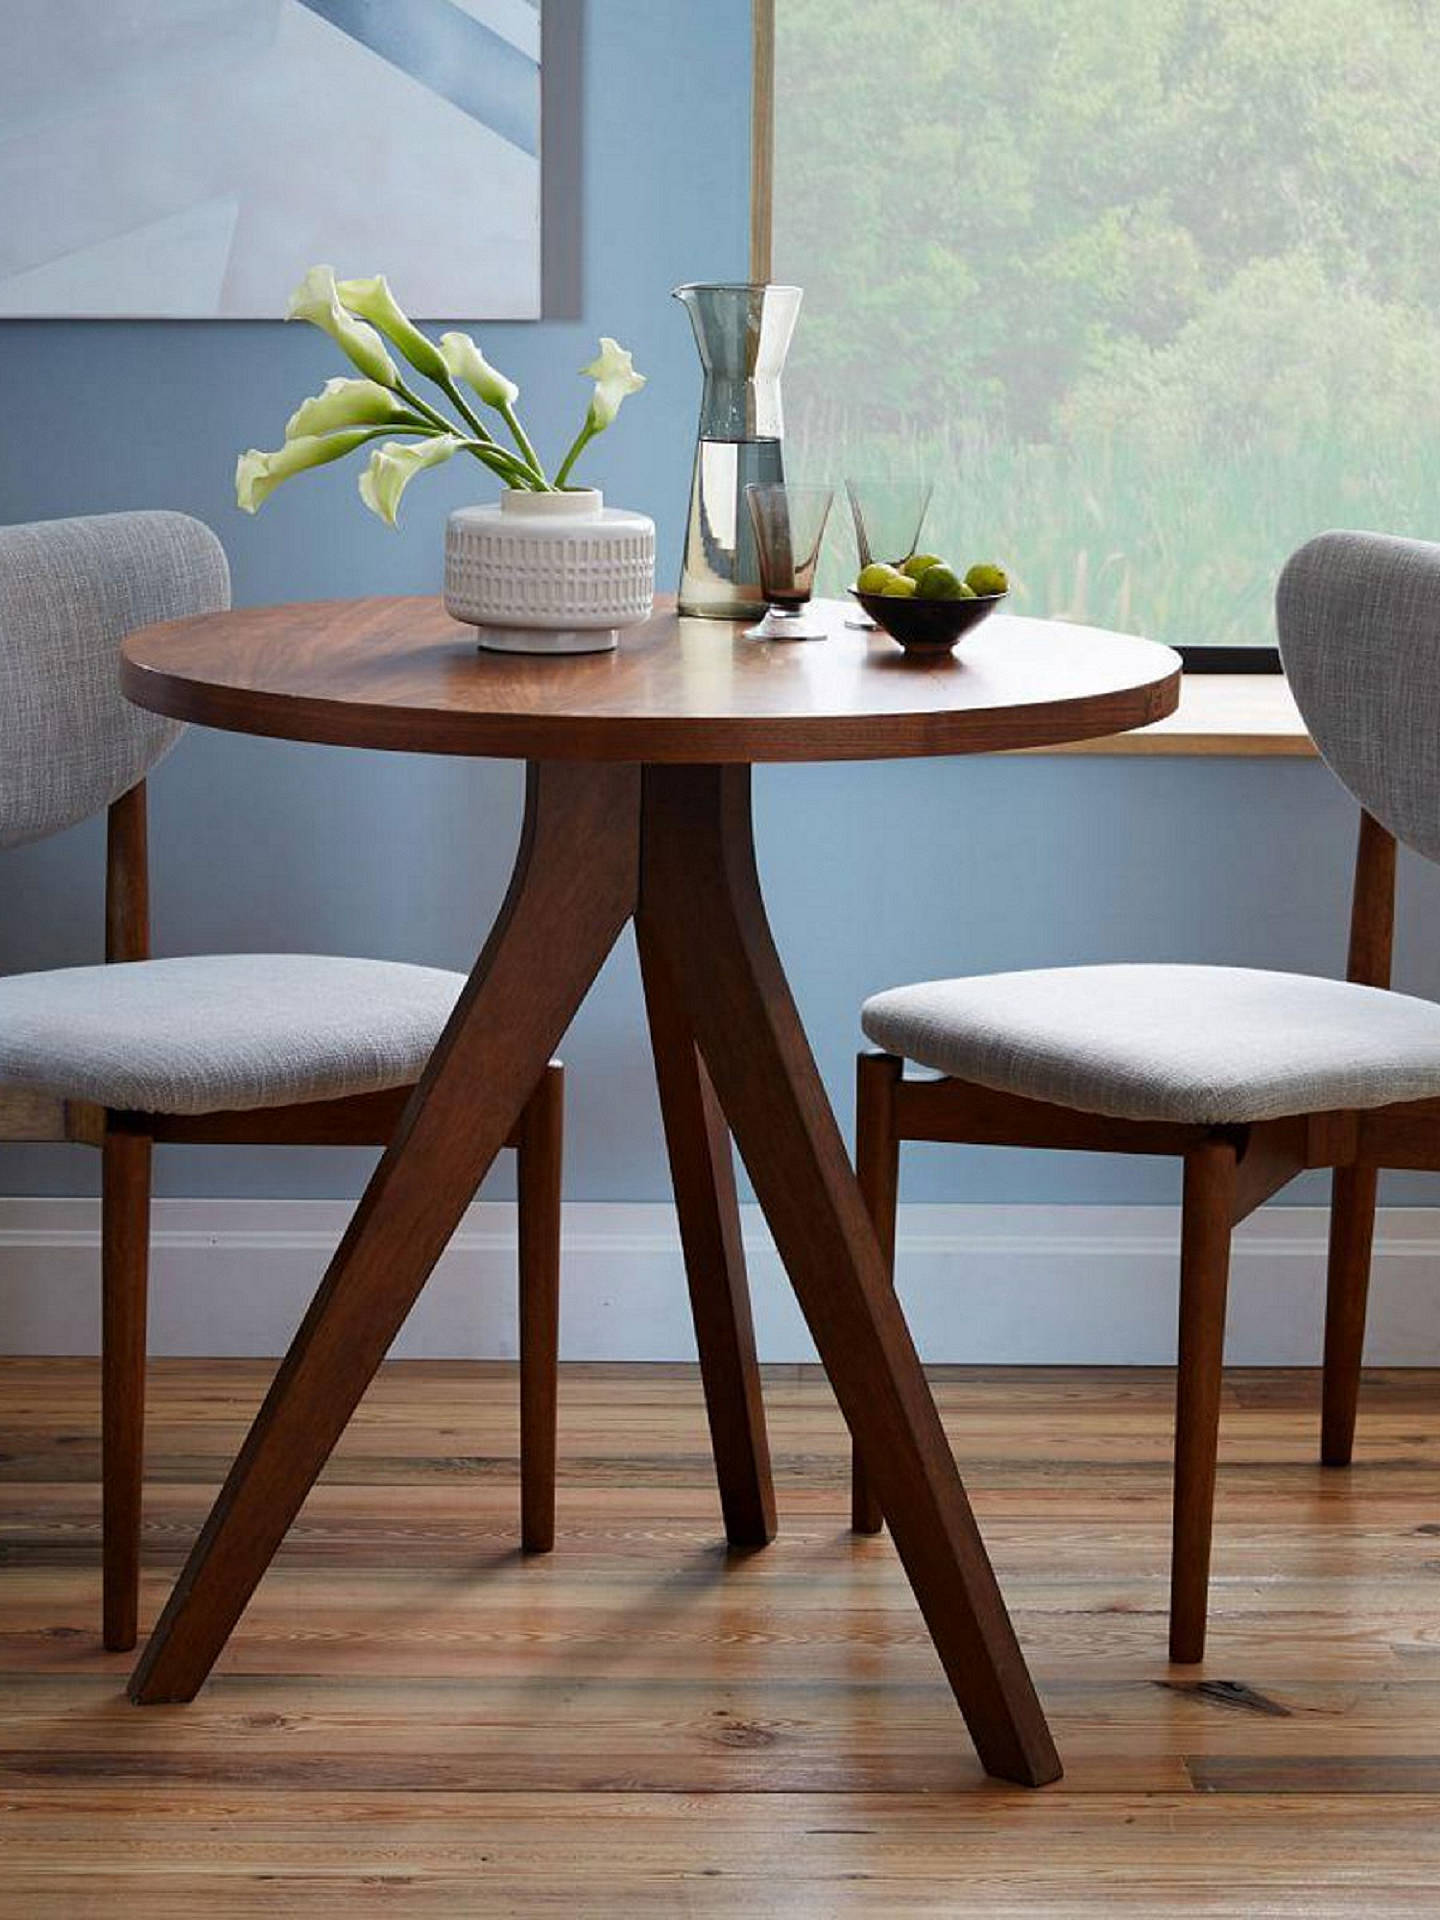 Buywest elm tripod round 2 seater dining table walnut online at johnlewis com